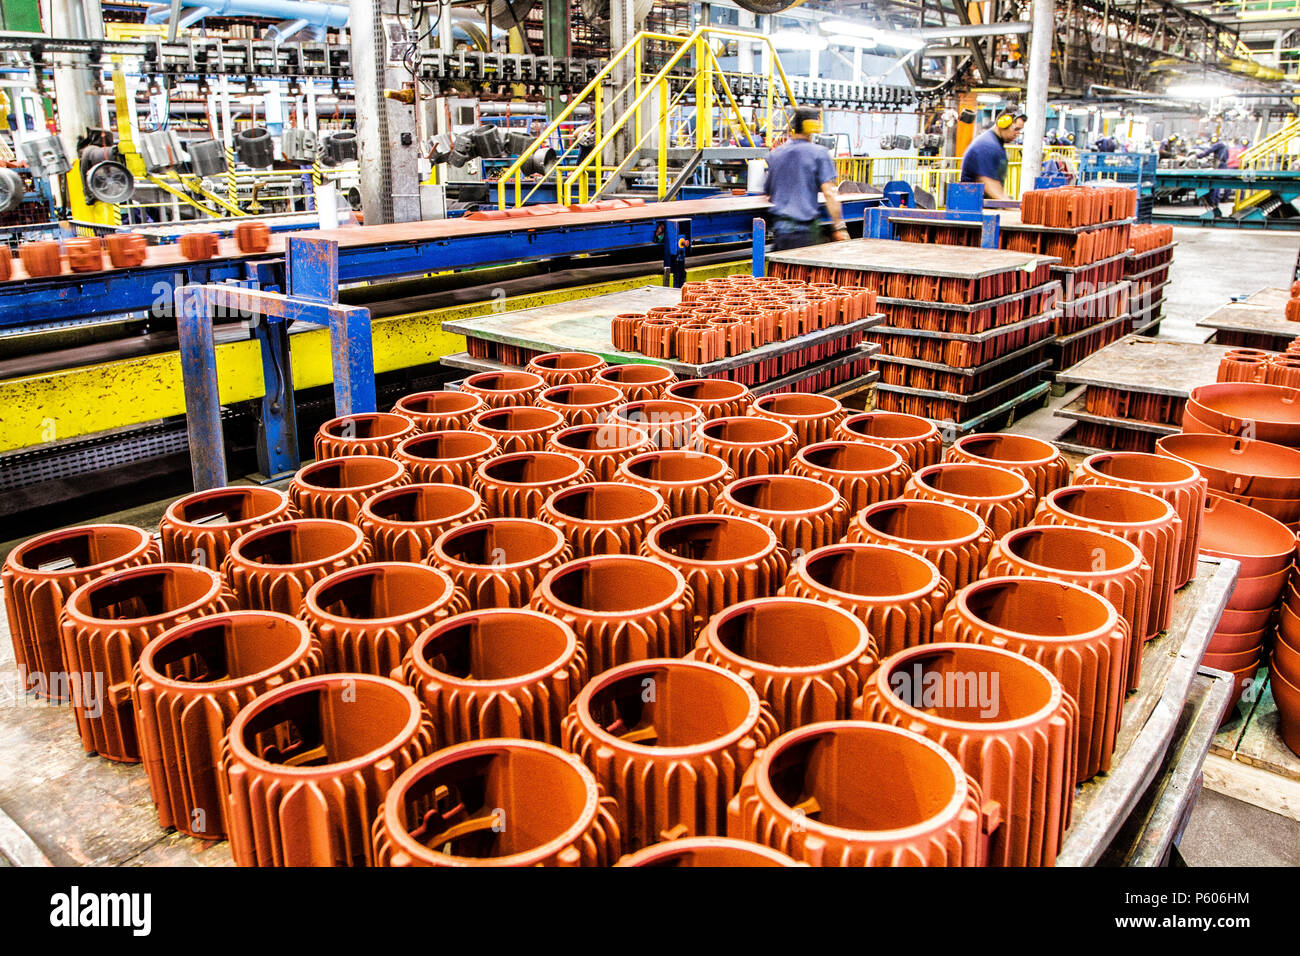 Manufacturing industrial plant in southern Brazil. - Stock Image